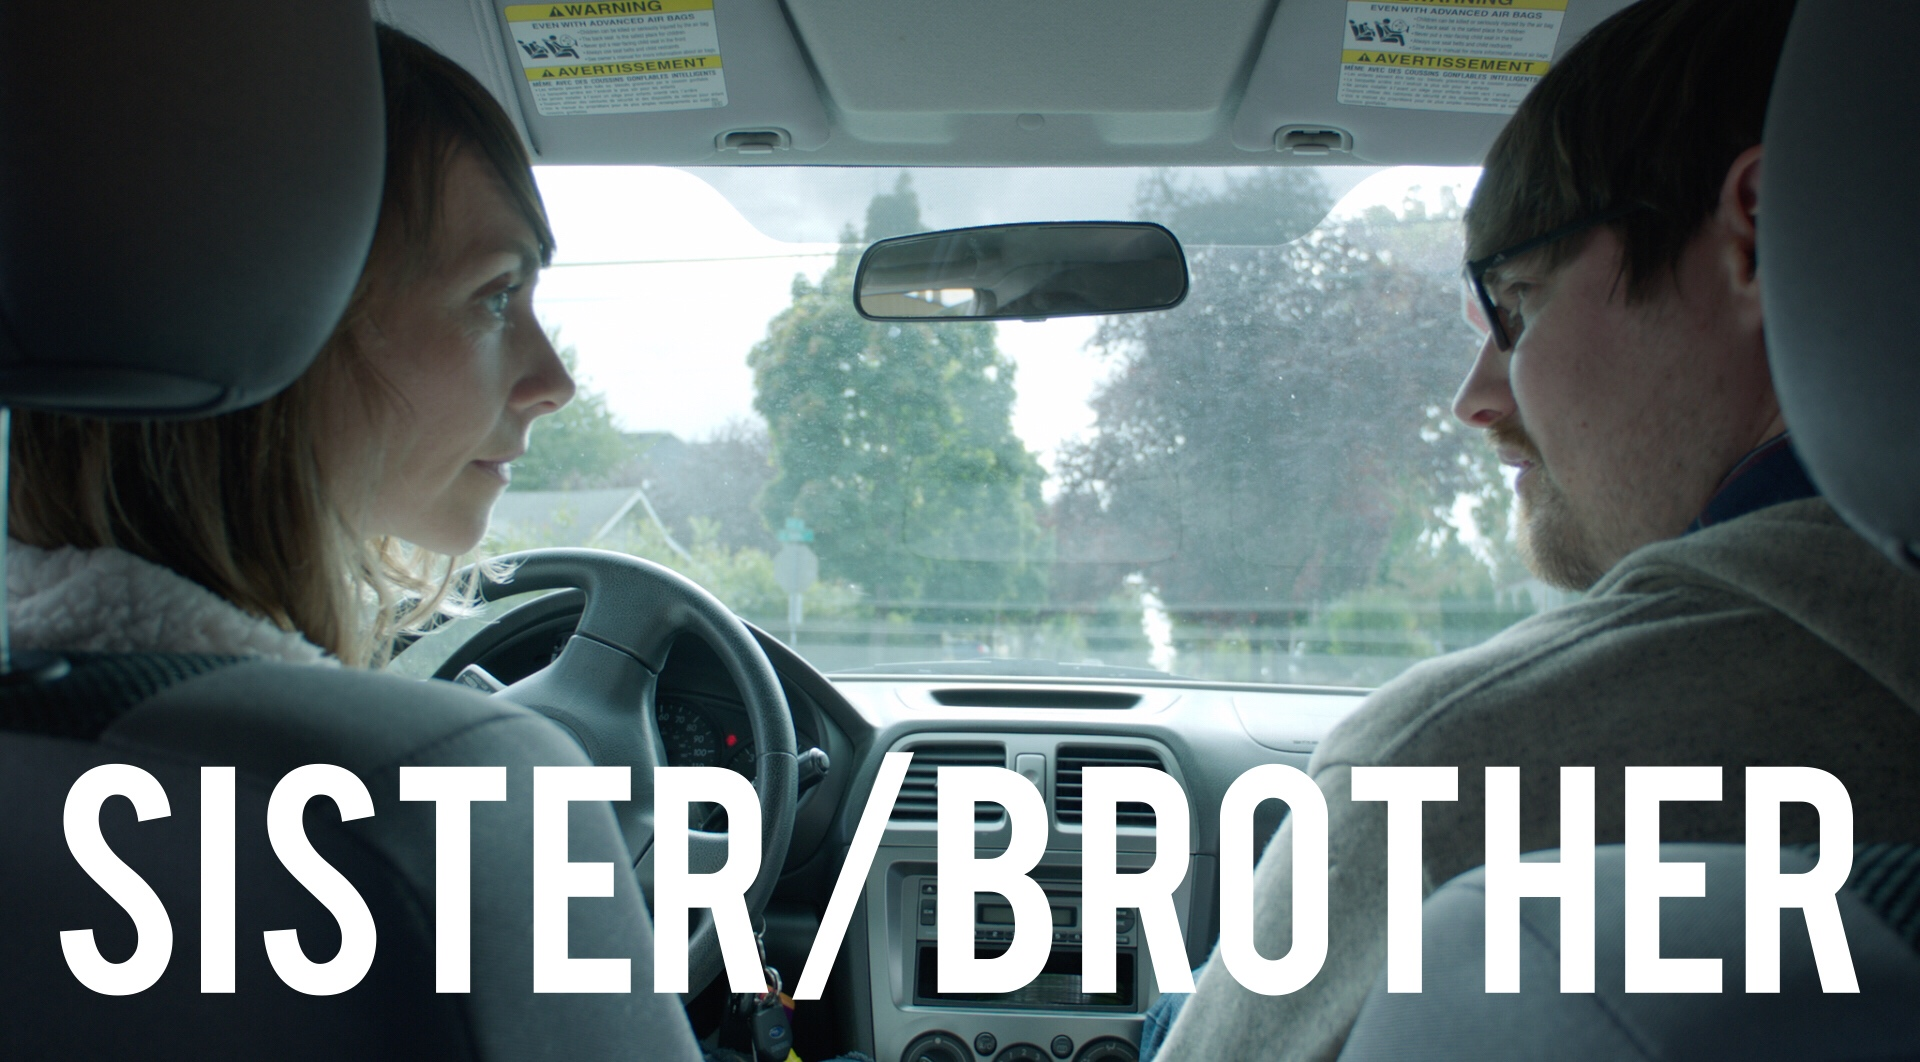 SISTER:BROTHER image.JPG